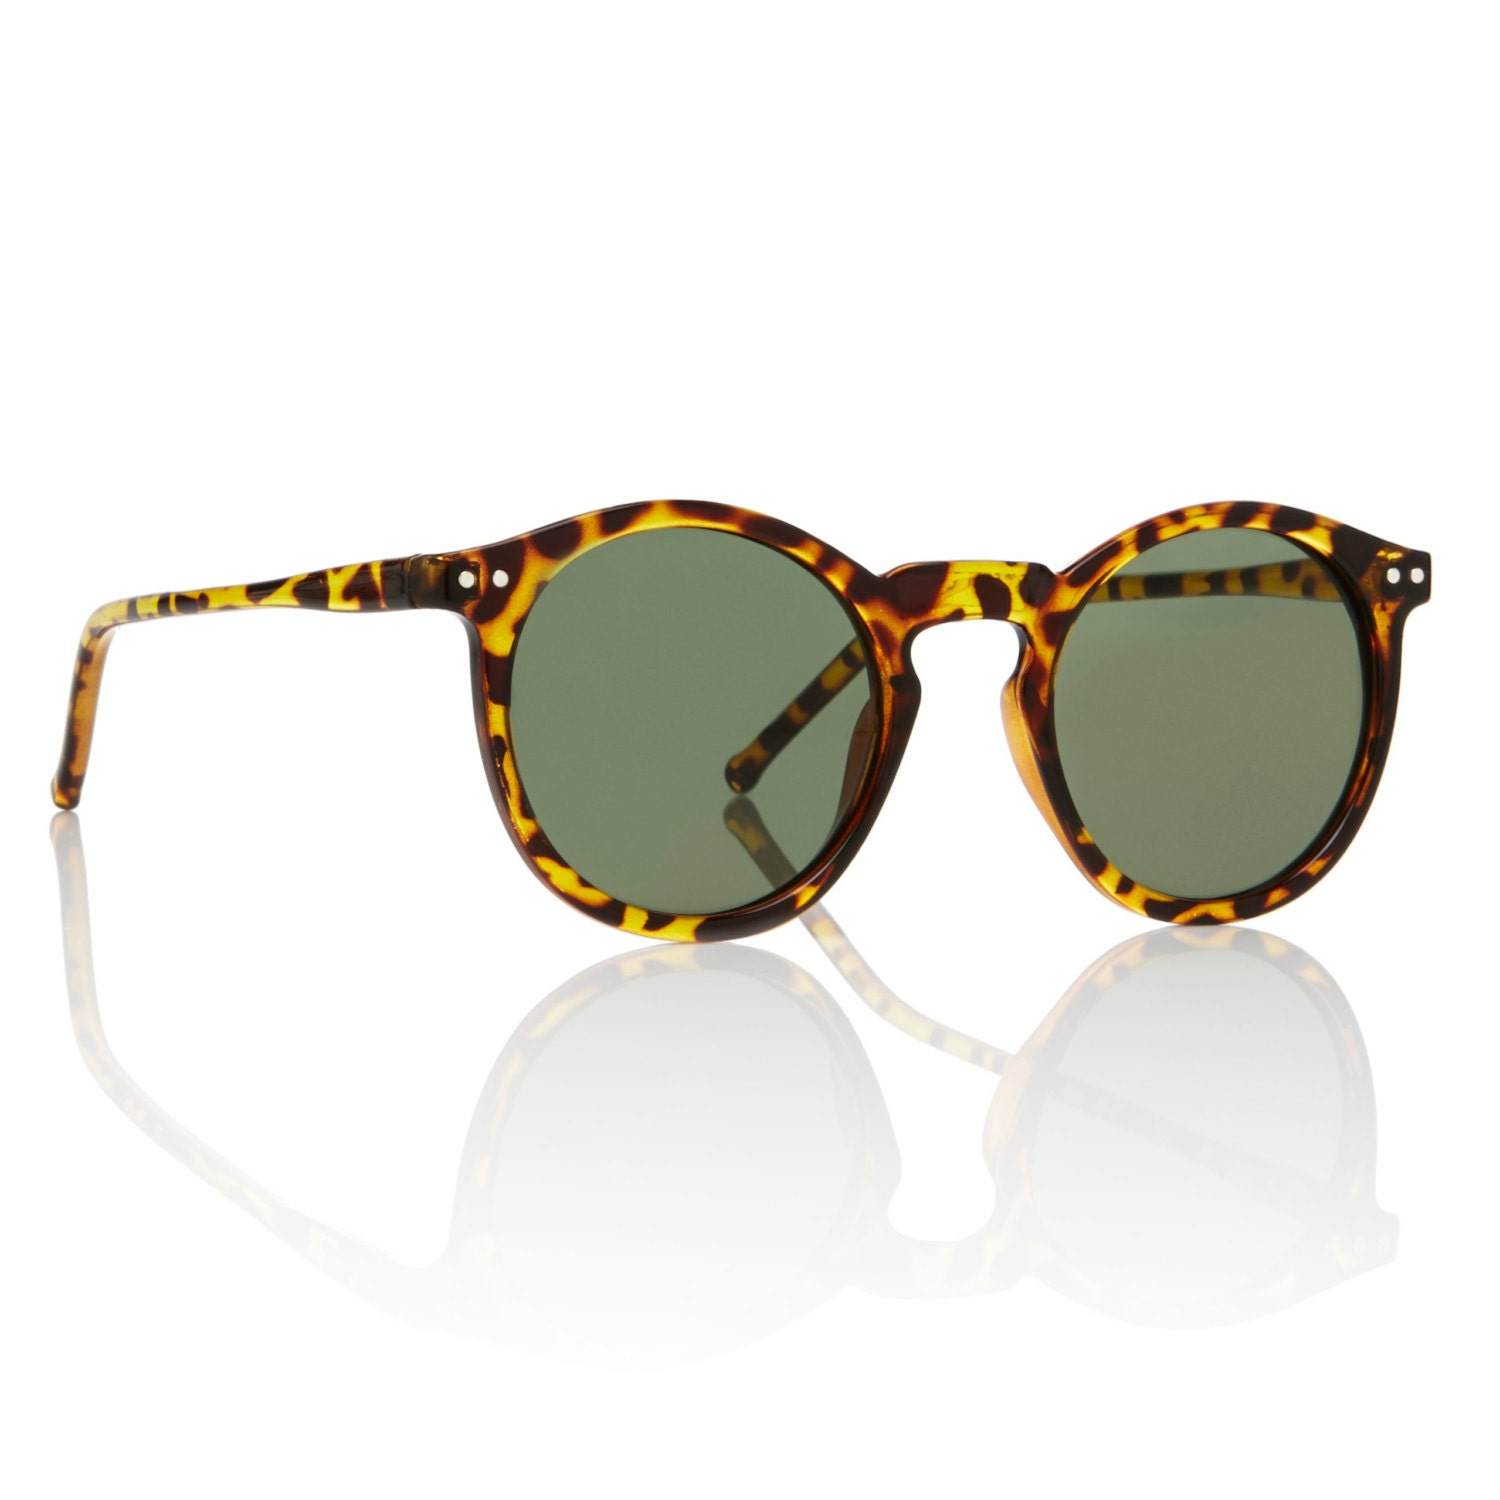 O Malley Sunglasses Tortoise Round Frame Forest Green Lens ...